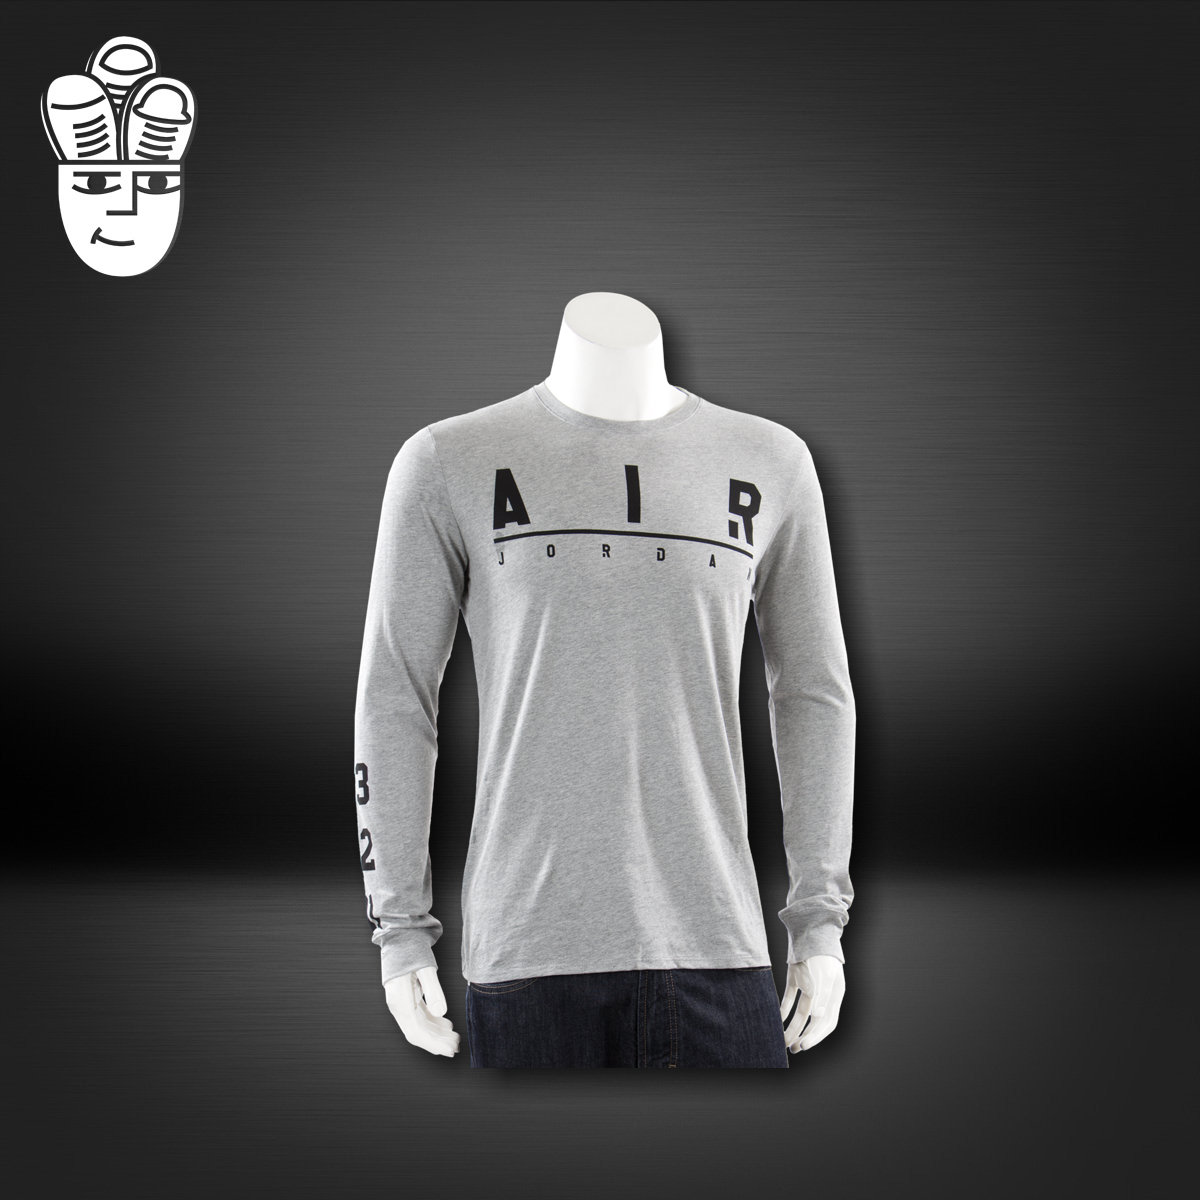 Air jordan a. i. r jordan l/s t-shirt aj men's fashion logo long sleeve t-shirt